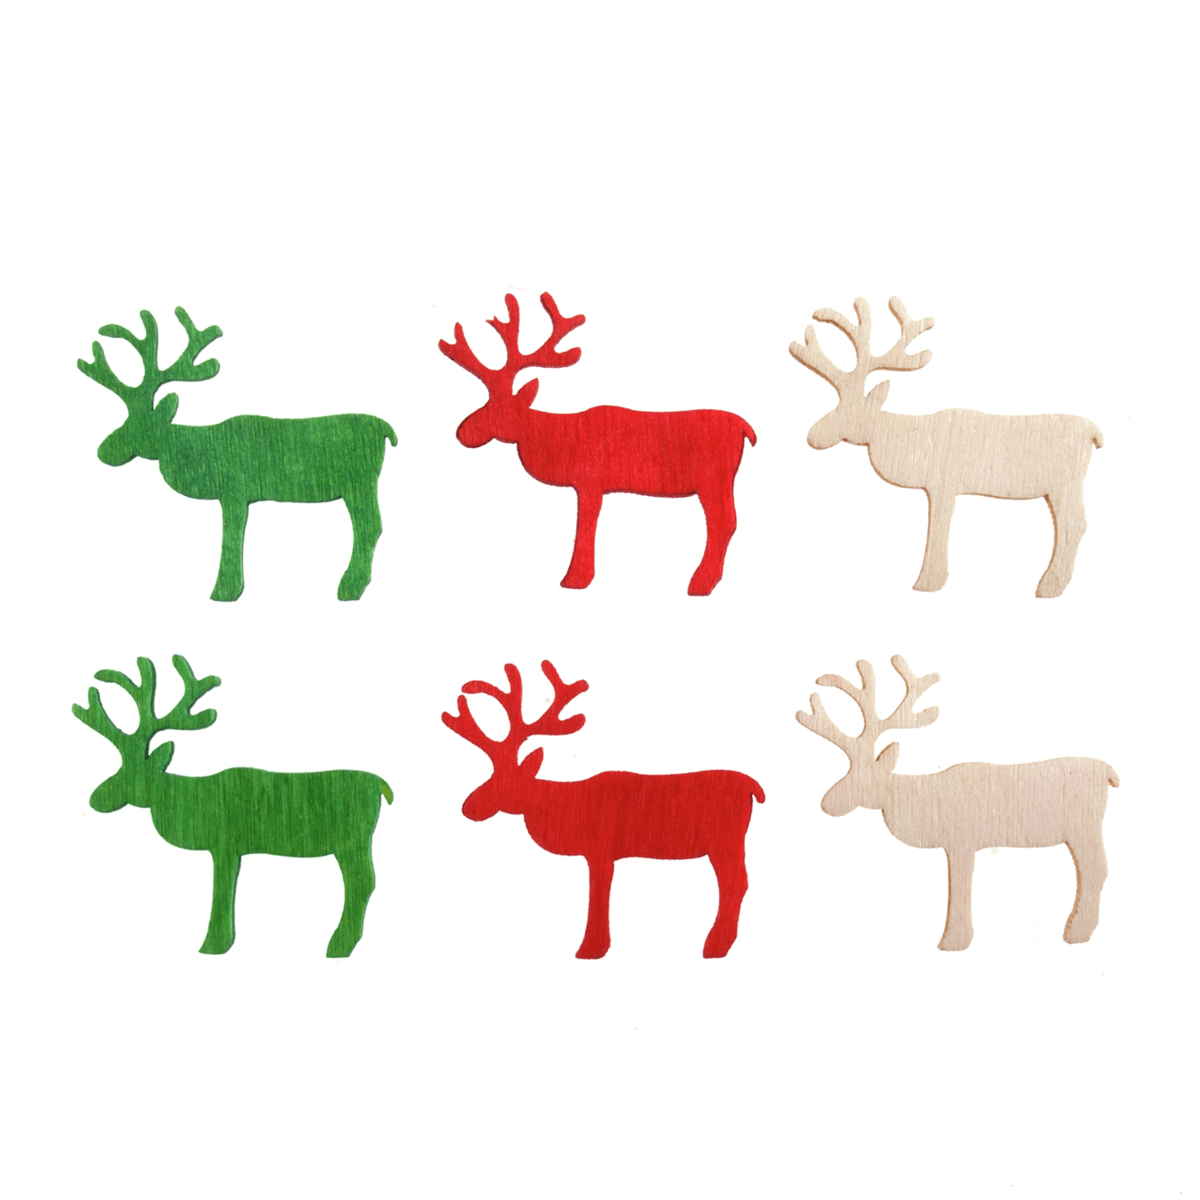 12 x Christmas Bright Wooden Reindeer Embellishments Scrap booking